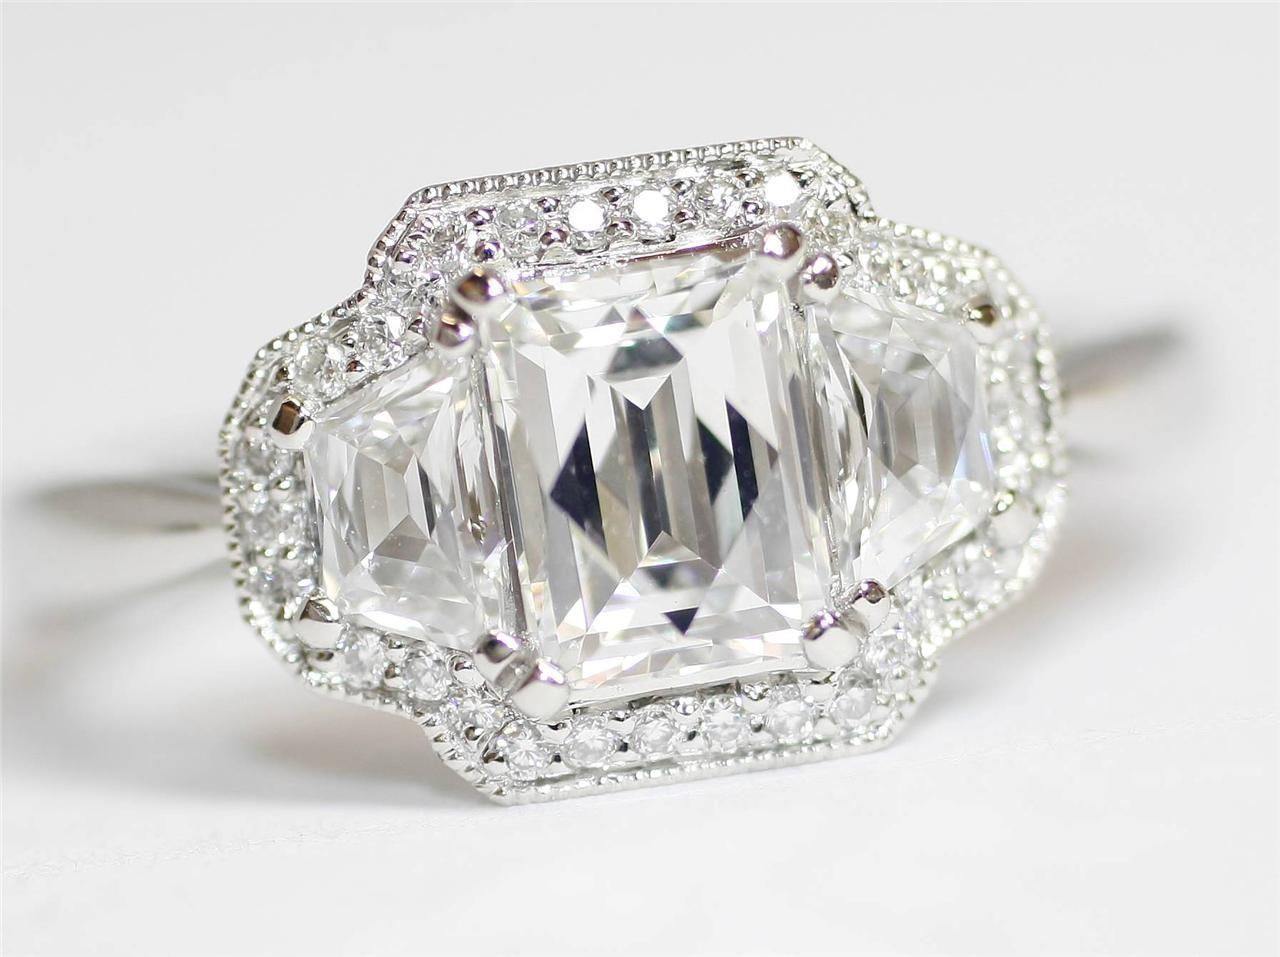 sell a tycoon diamond ring - Best Place To Sell Wedding Ring